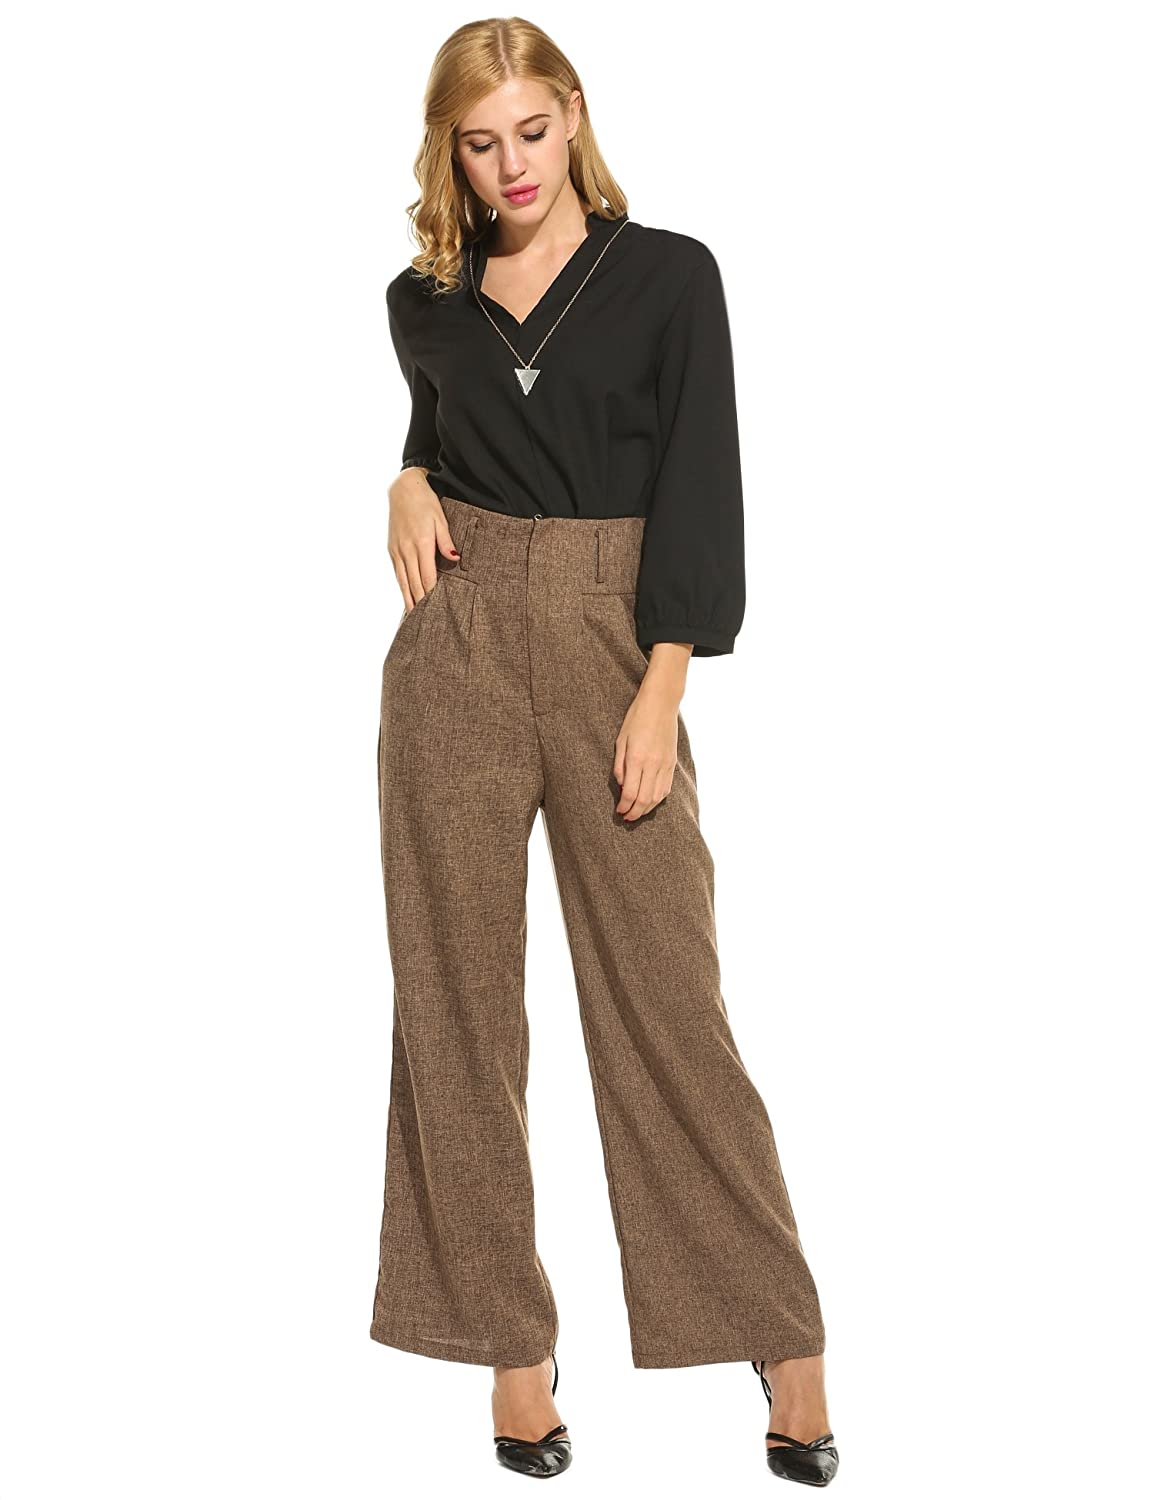 1920s Clothing Zeagoo Women Casual Superline Wide Flare Leg High Waist Zipper Solid Long Pants $25.99 AT vintagedancer.com